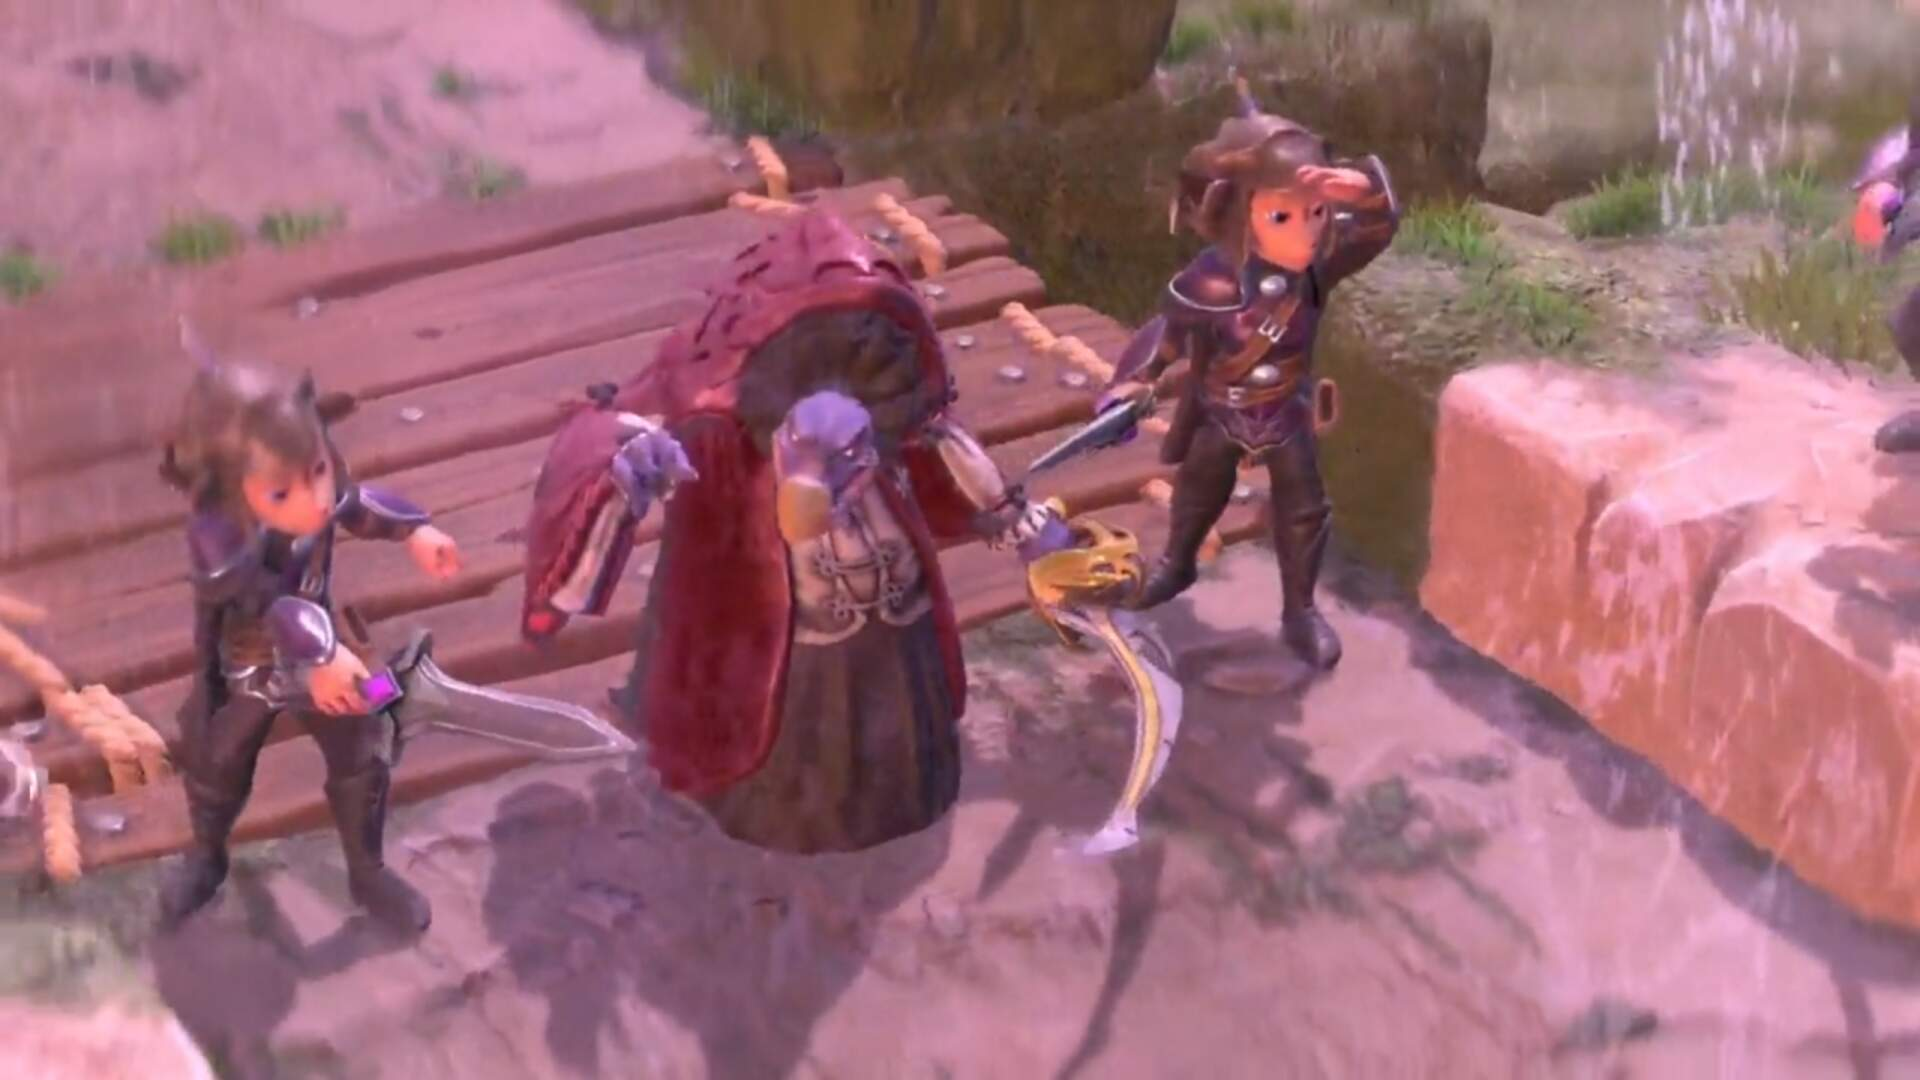 The Dark Crystal: Age of Resistance Tactics Brings Jim Henson's Gelflings to Switch